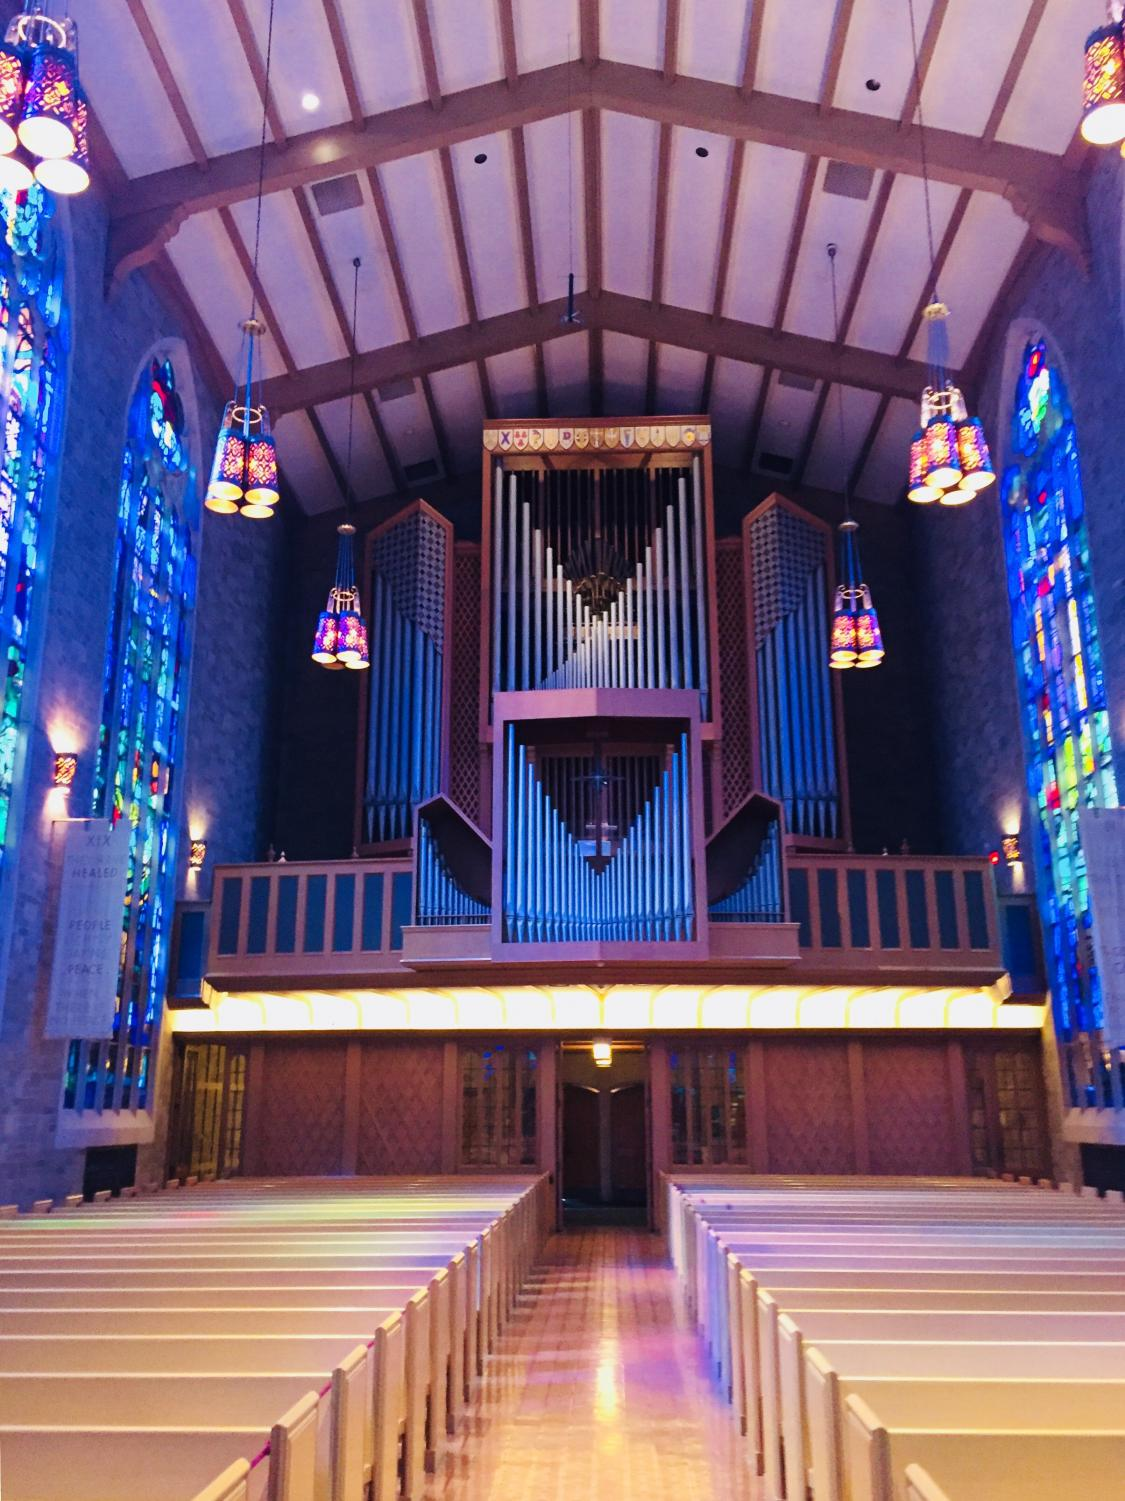 The Aeolian-Skinner organ has been used for performances at the Alice Millar chapel for 54 years. Once played by hundreds of organ majors at Northwestern University, it is now mostly used for Sunday services and weddings.